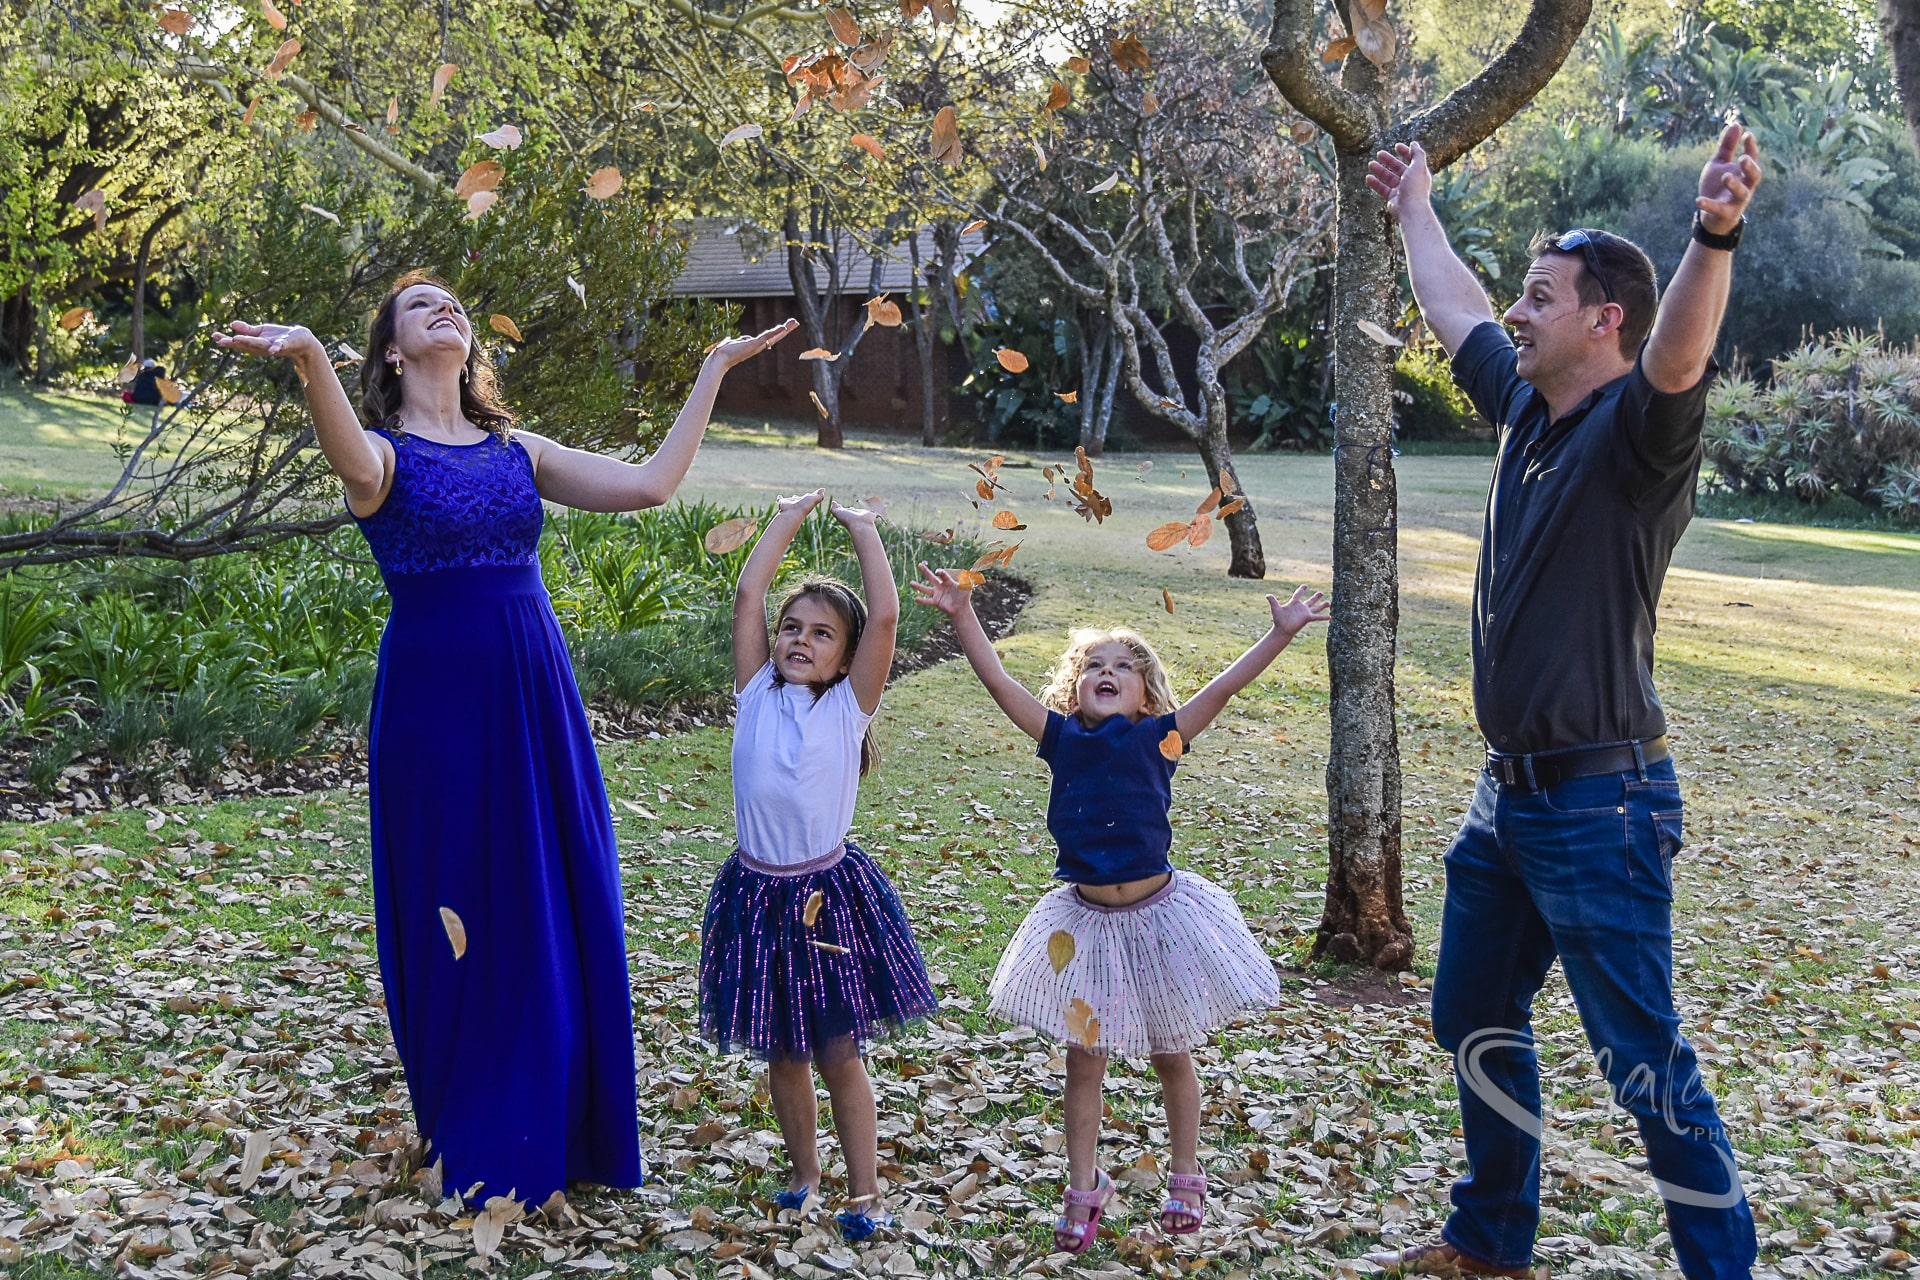 Stokes family photo shoot playing in the leaves at Jan Cilliers Park